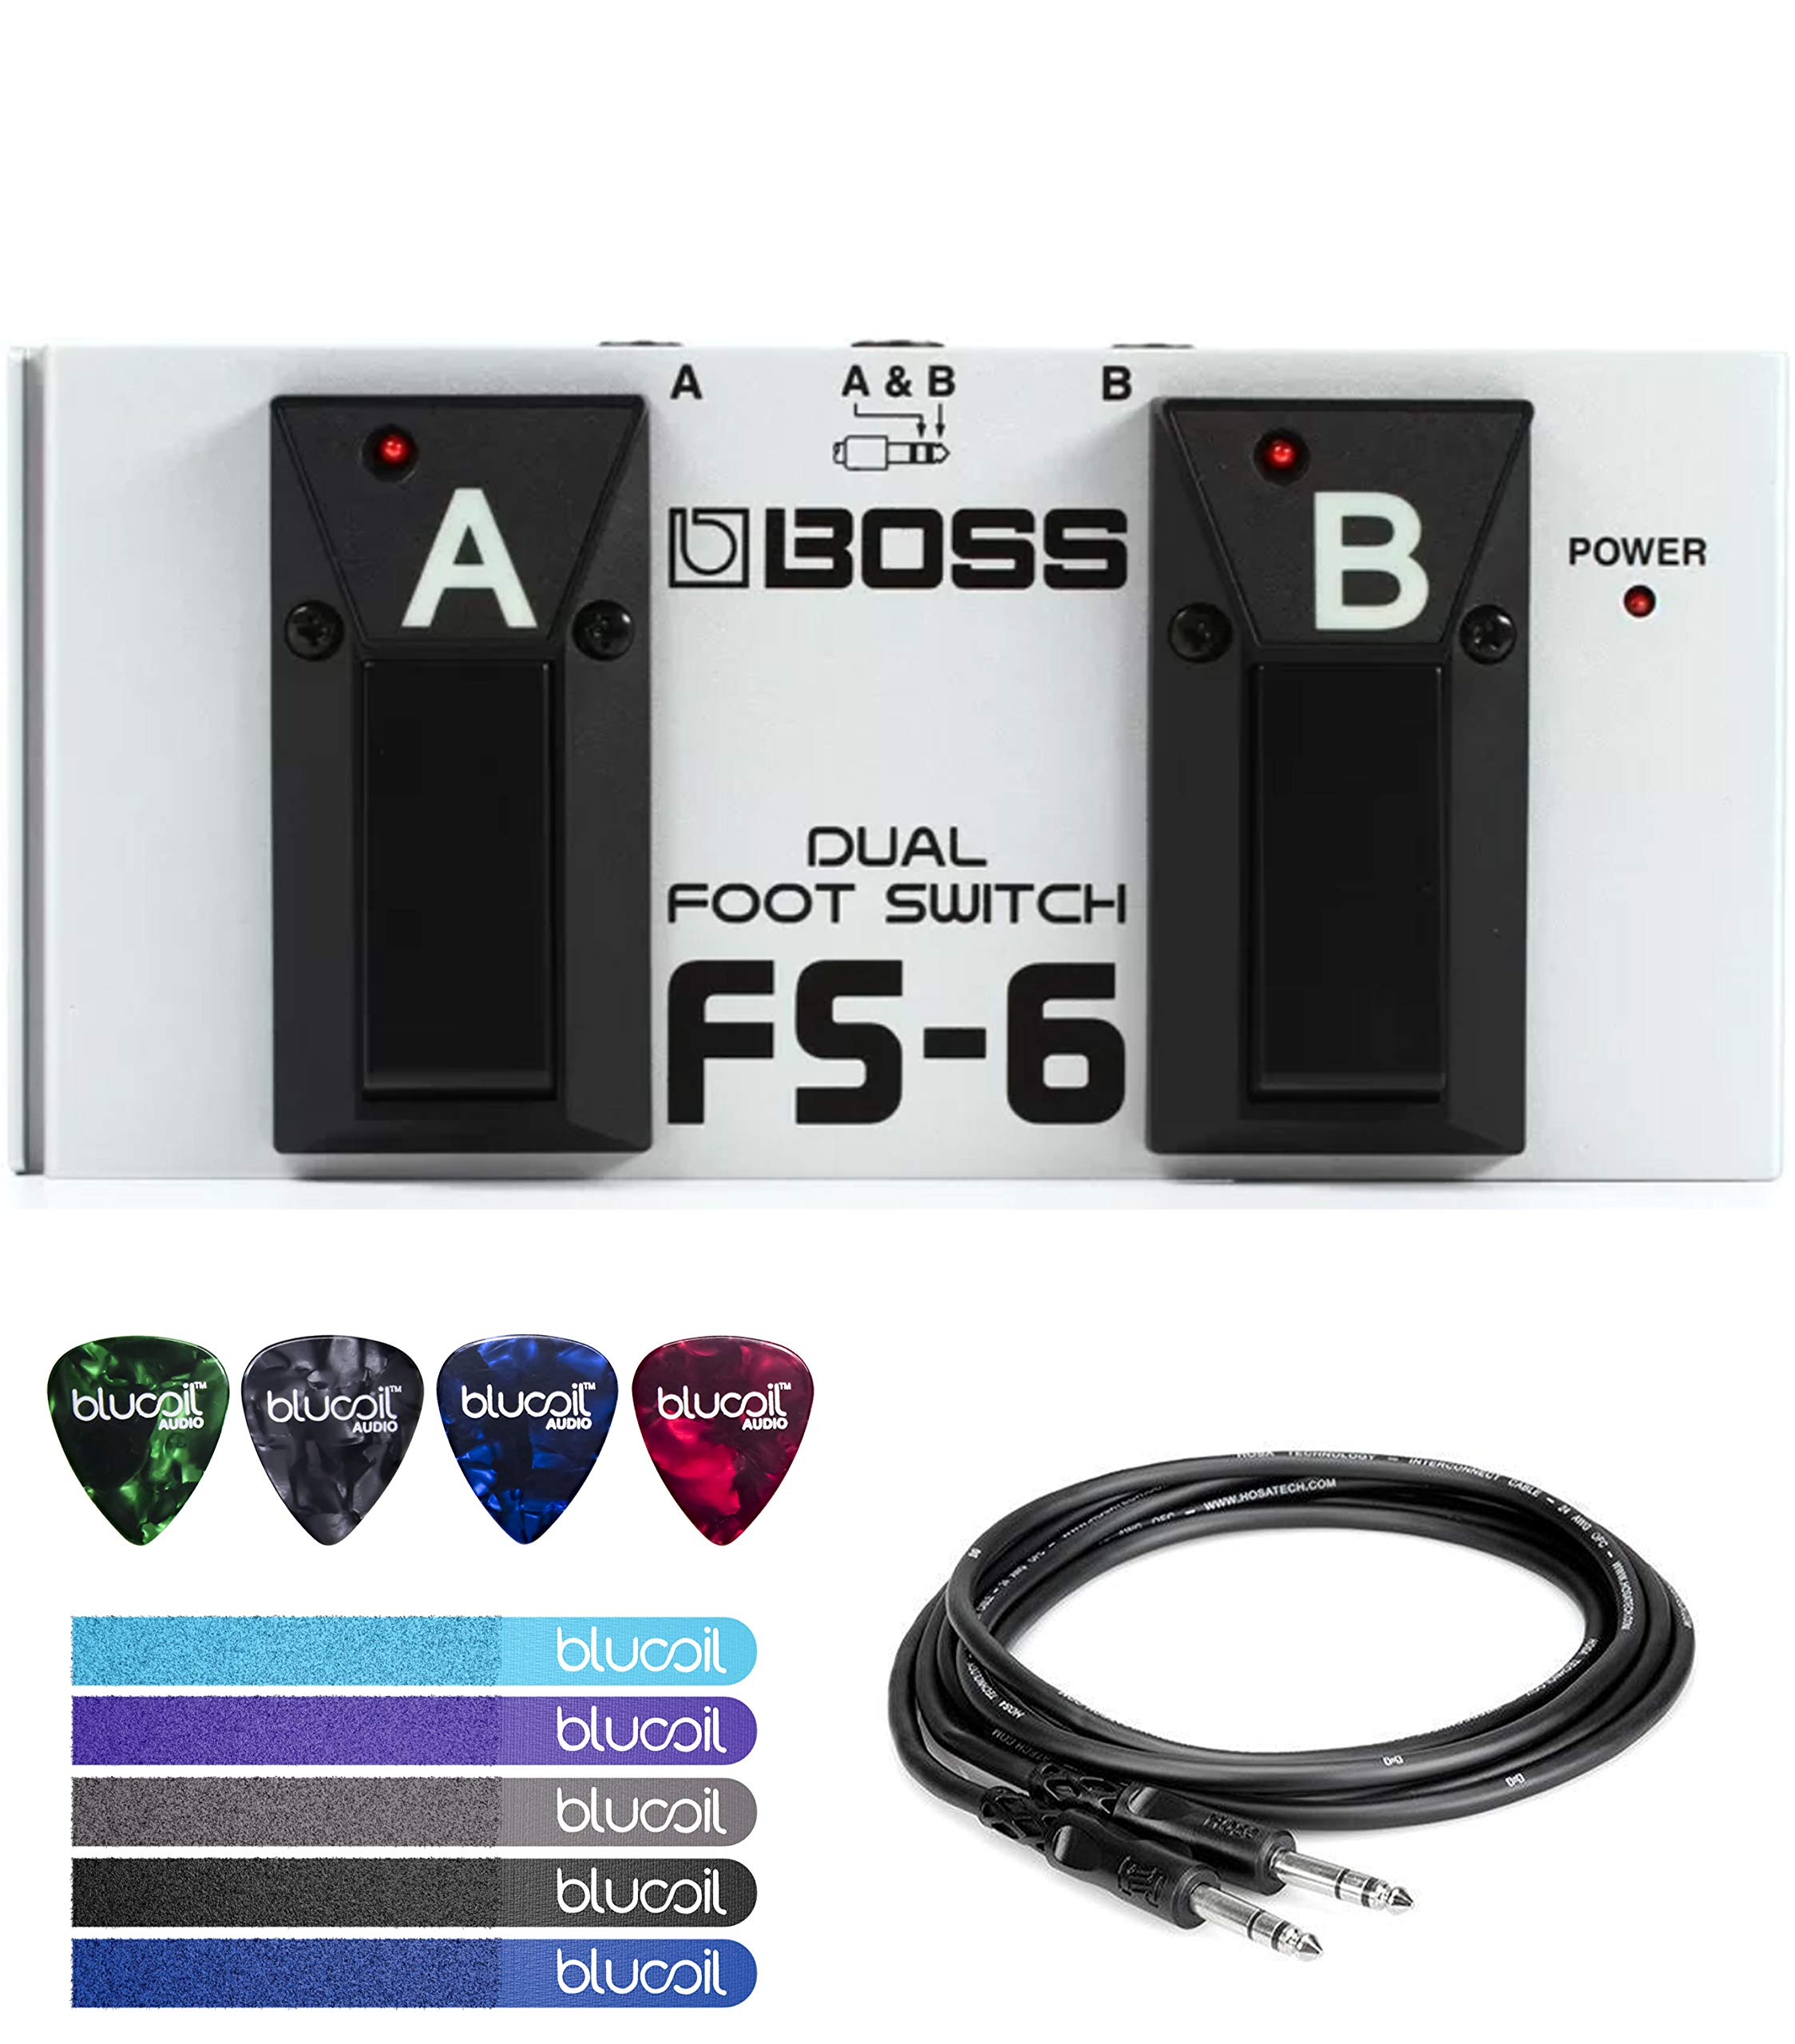 BOSS FS-6 Dual Latch and Momentary Foot Switch Pedal Bundle with Hosa 3-FT 1/4-Inch Male to Male Cable, Blucoil 4-Pack of Celluloid Guitar Picks, and 5-Pack of Reusable Cable Ties by blucoil